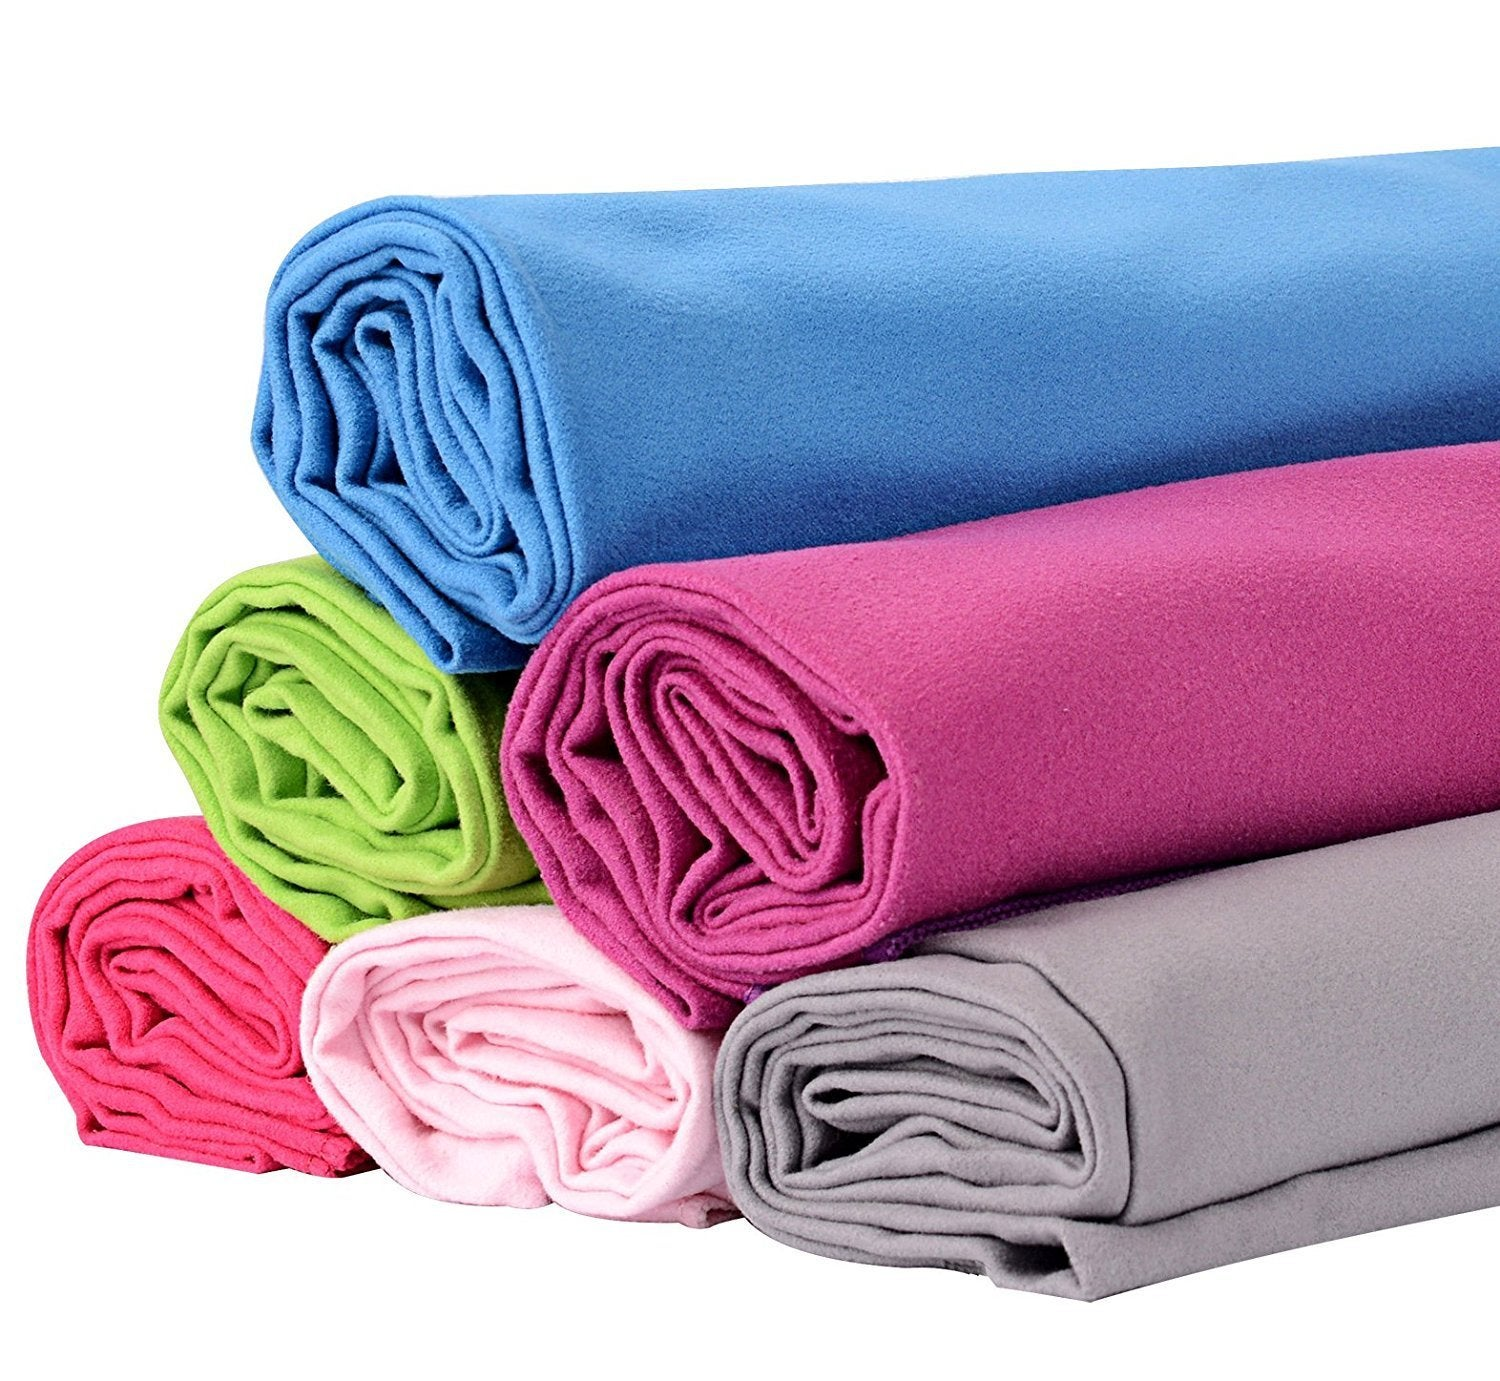 Kind of like a shemagh, there are endless uses for microfiber towels.